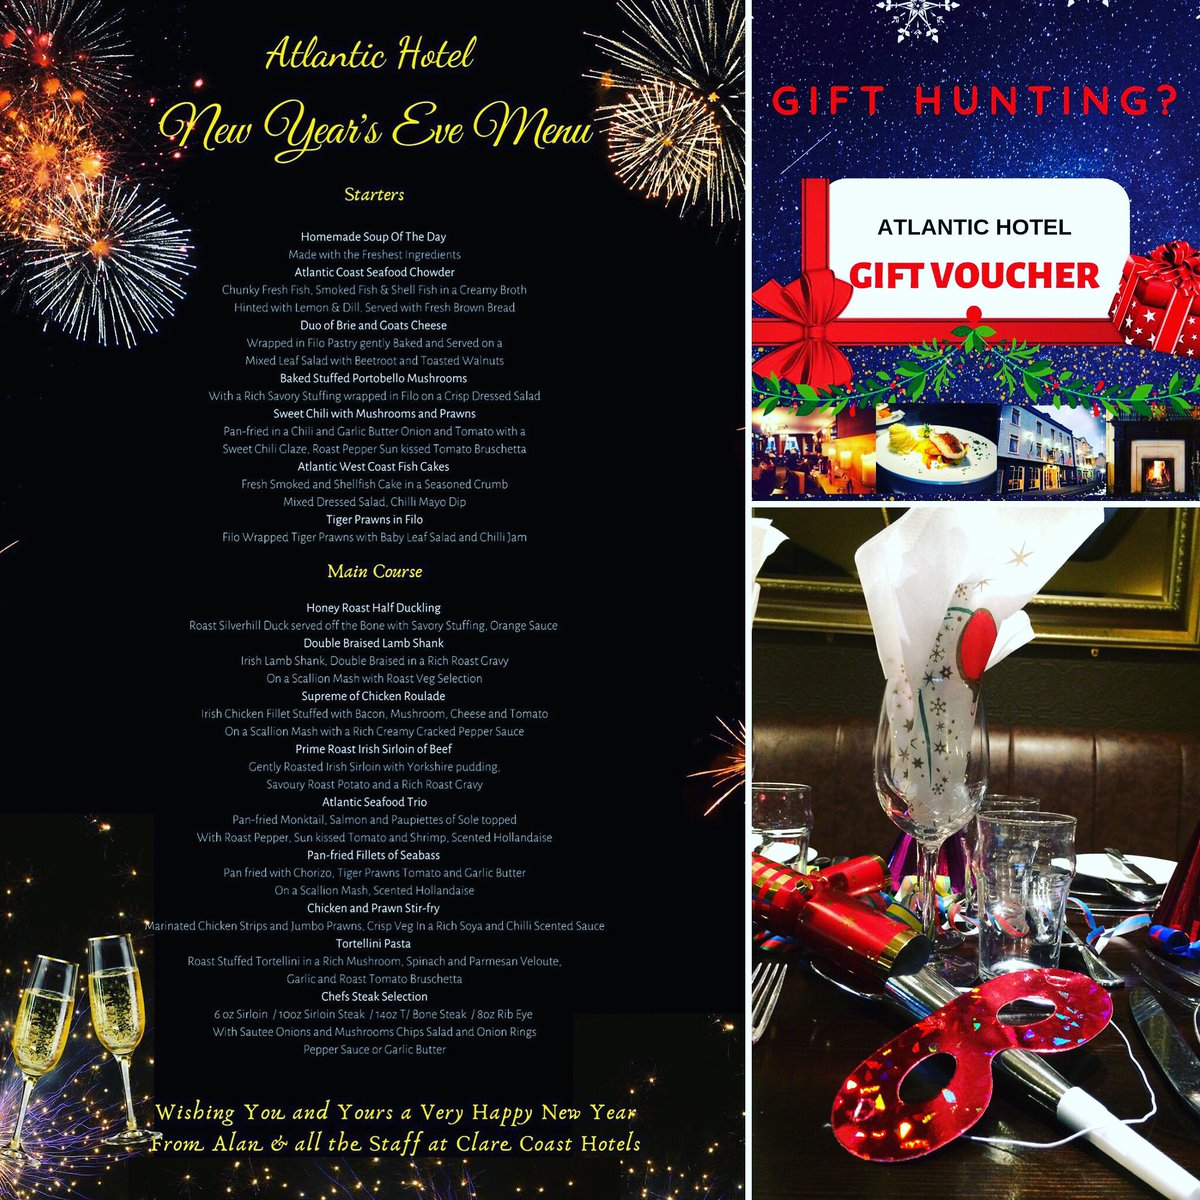 Clare Coast Hotels On Twitter Counting Down Our New Year Seve Menu Looks Delicious Atlanticlahinch And Live Music At Shamrocklahinch Lahinch